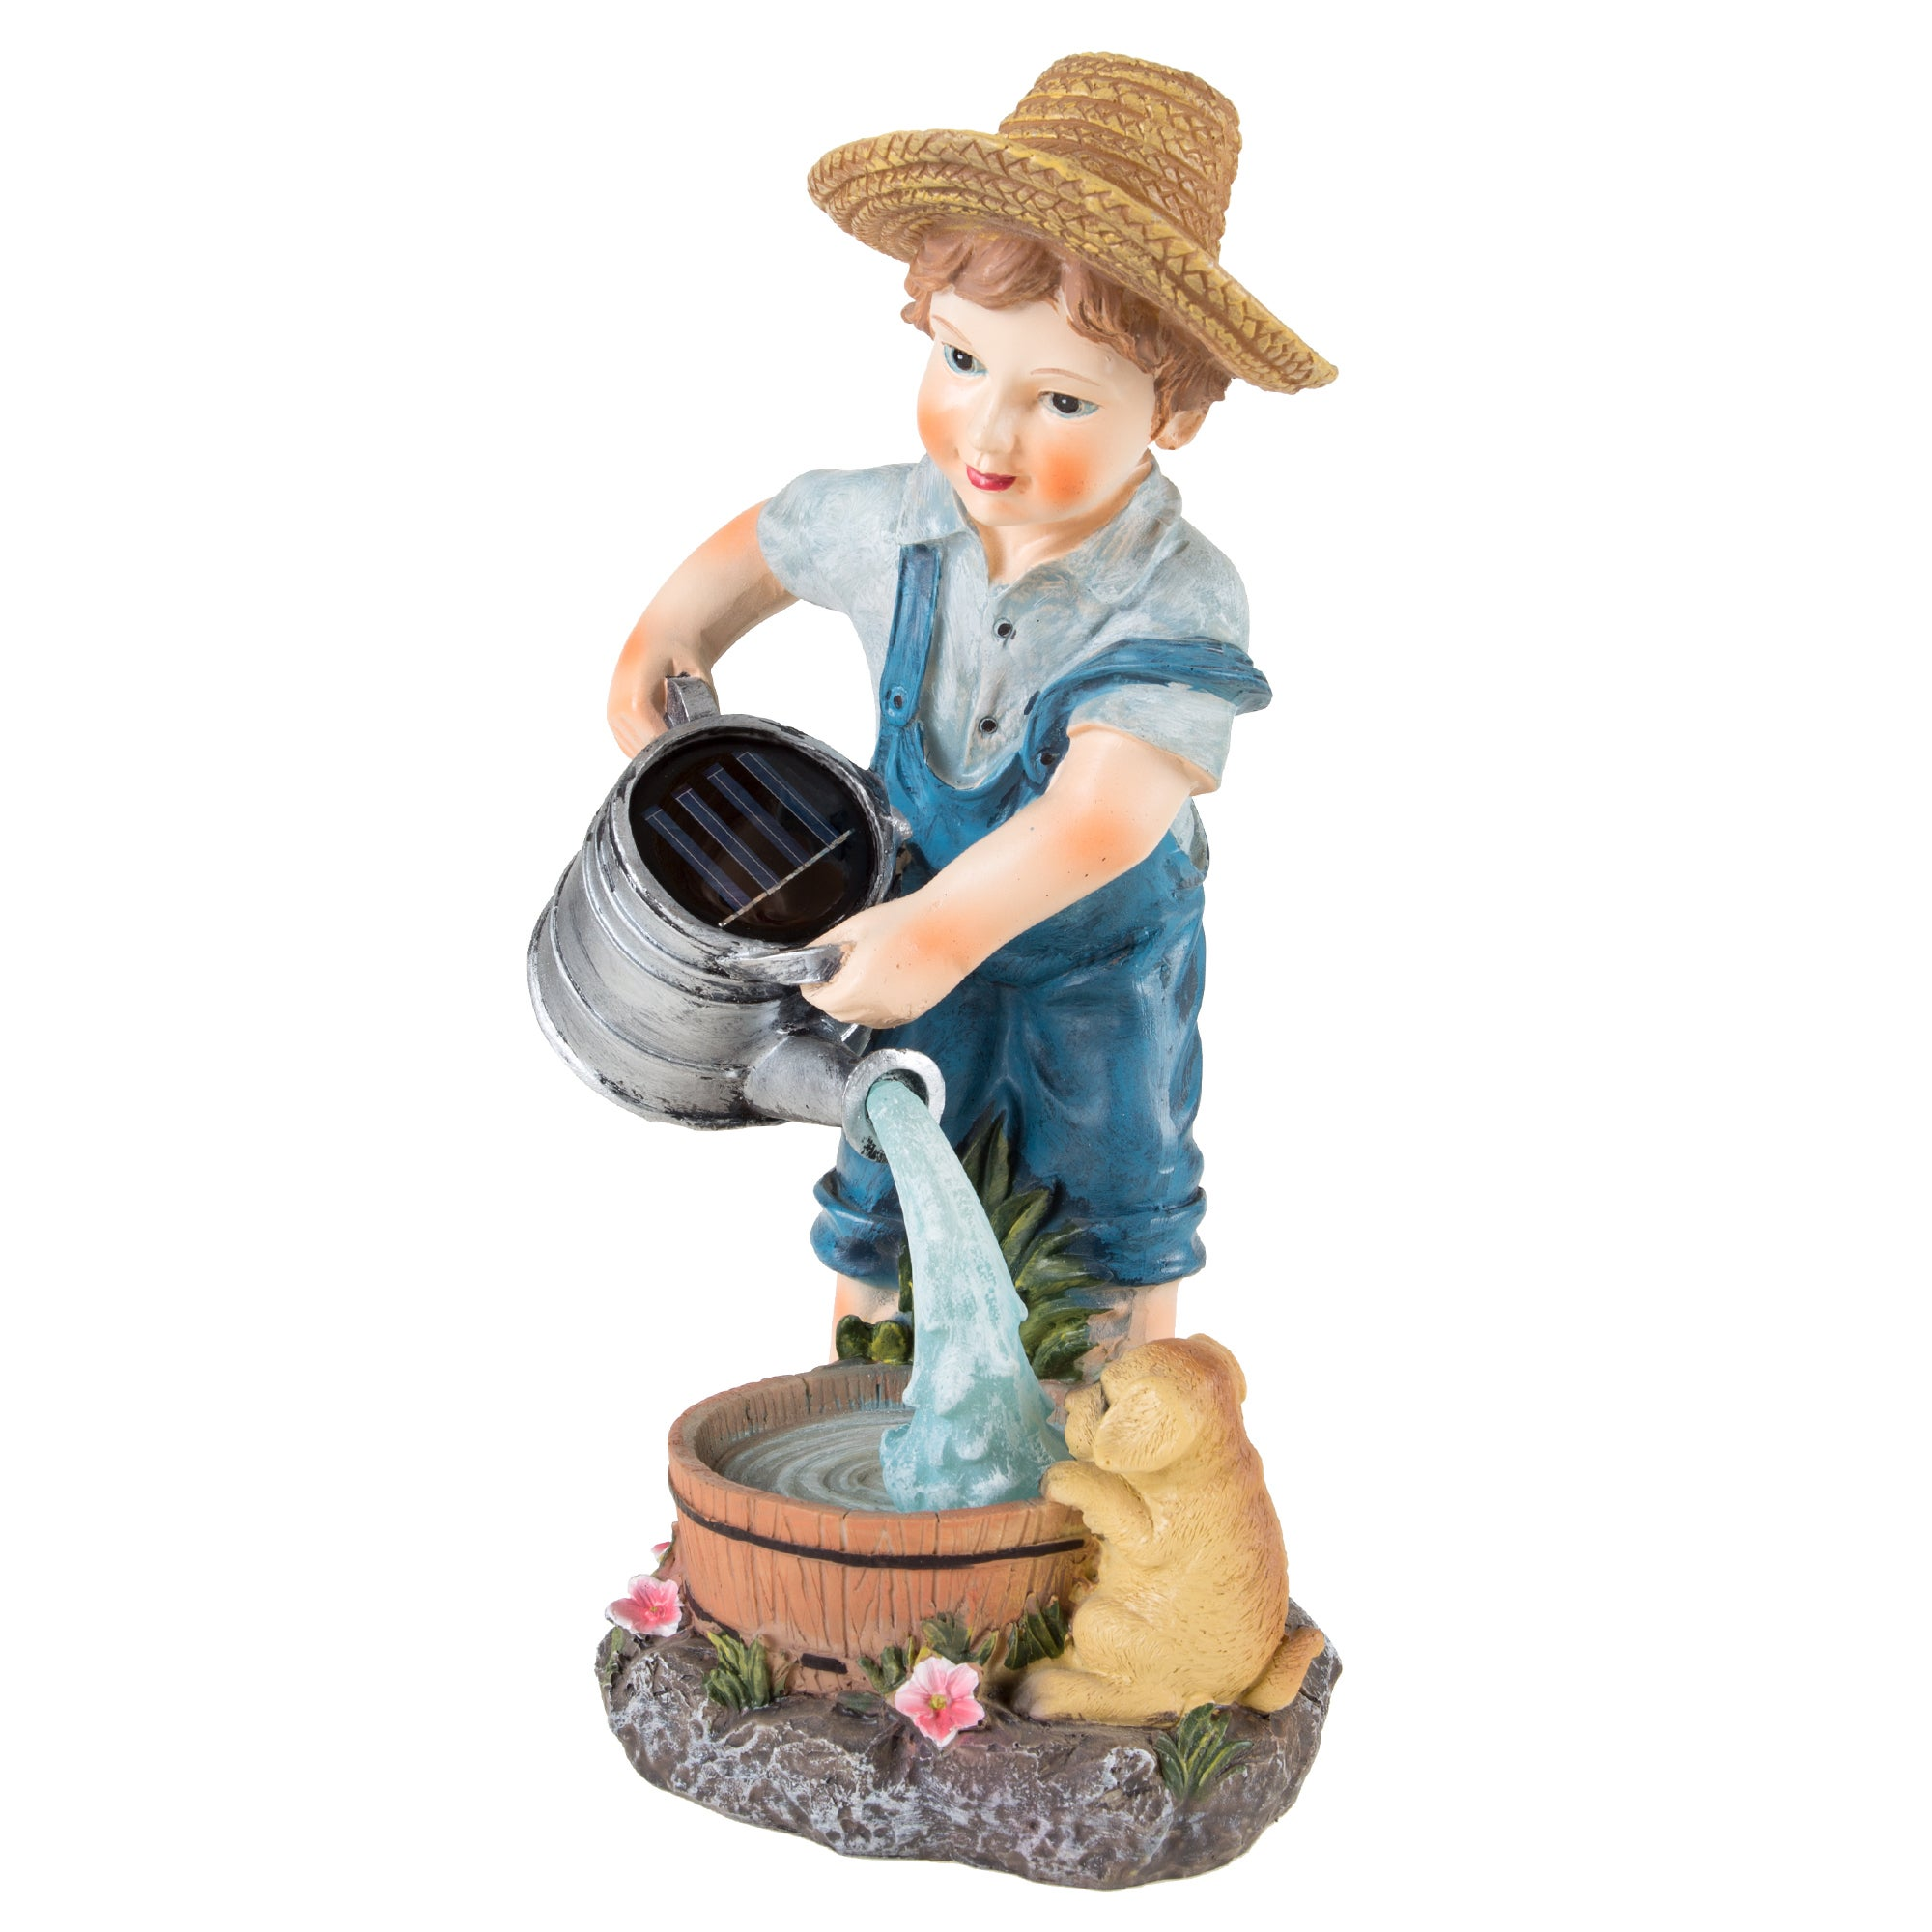 Shop Yard Decor, Solar Outdoor LED Light And Battery Operated Statue For  Garden By Pure Garden   Little Boy Statue   Free Shipping On Orders Over  $45 ...